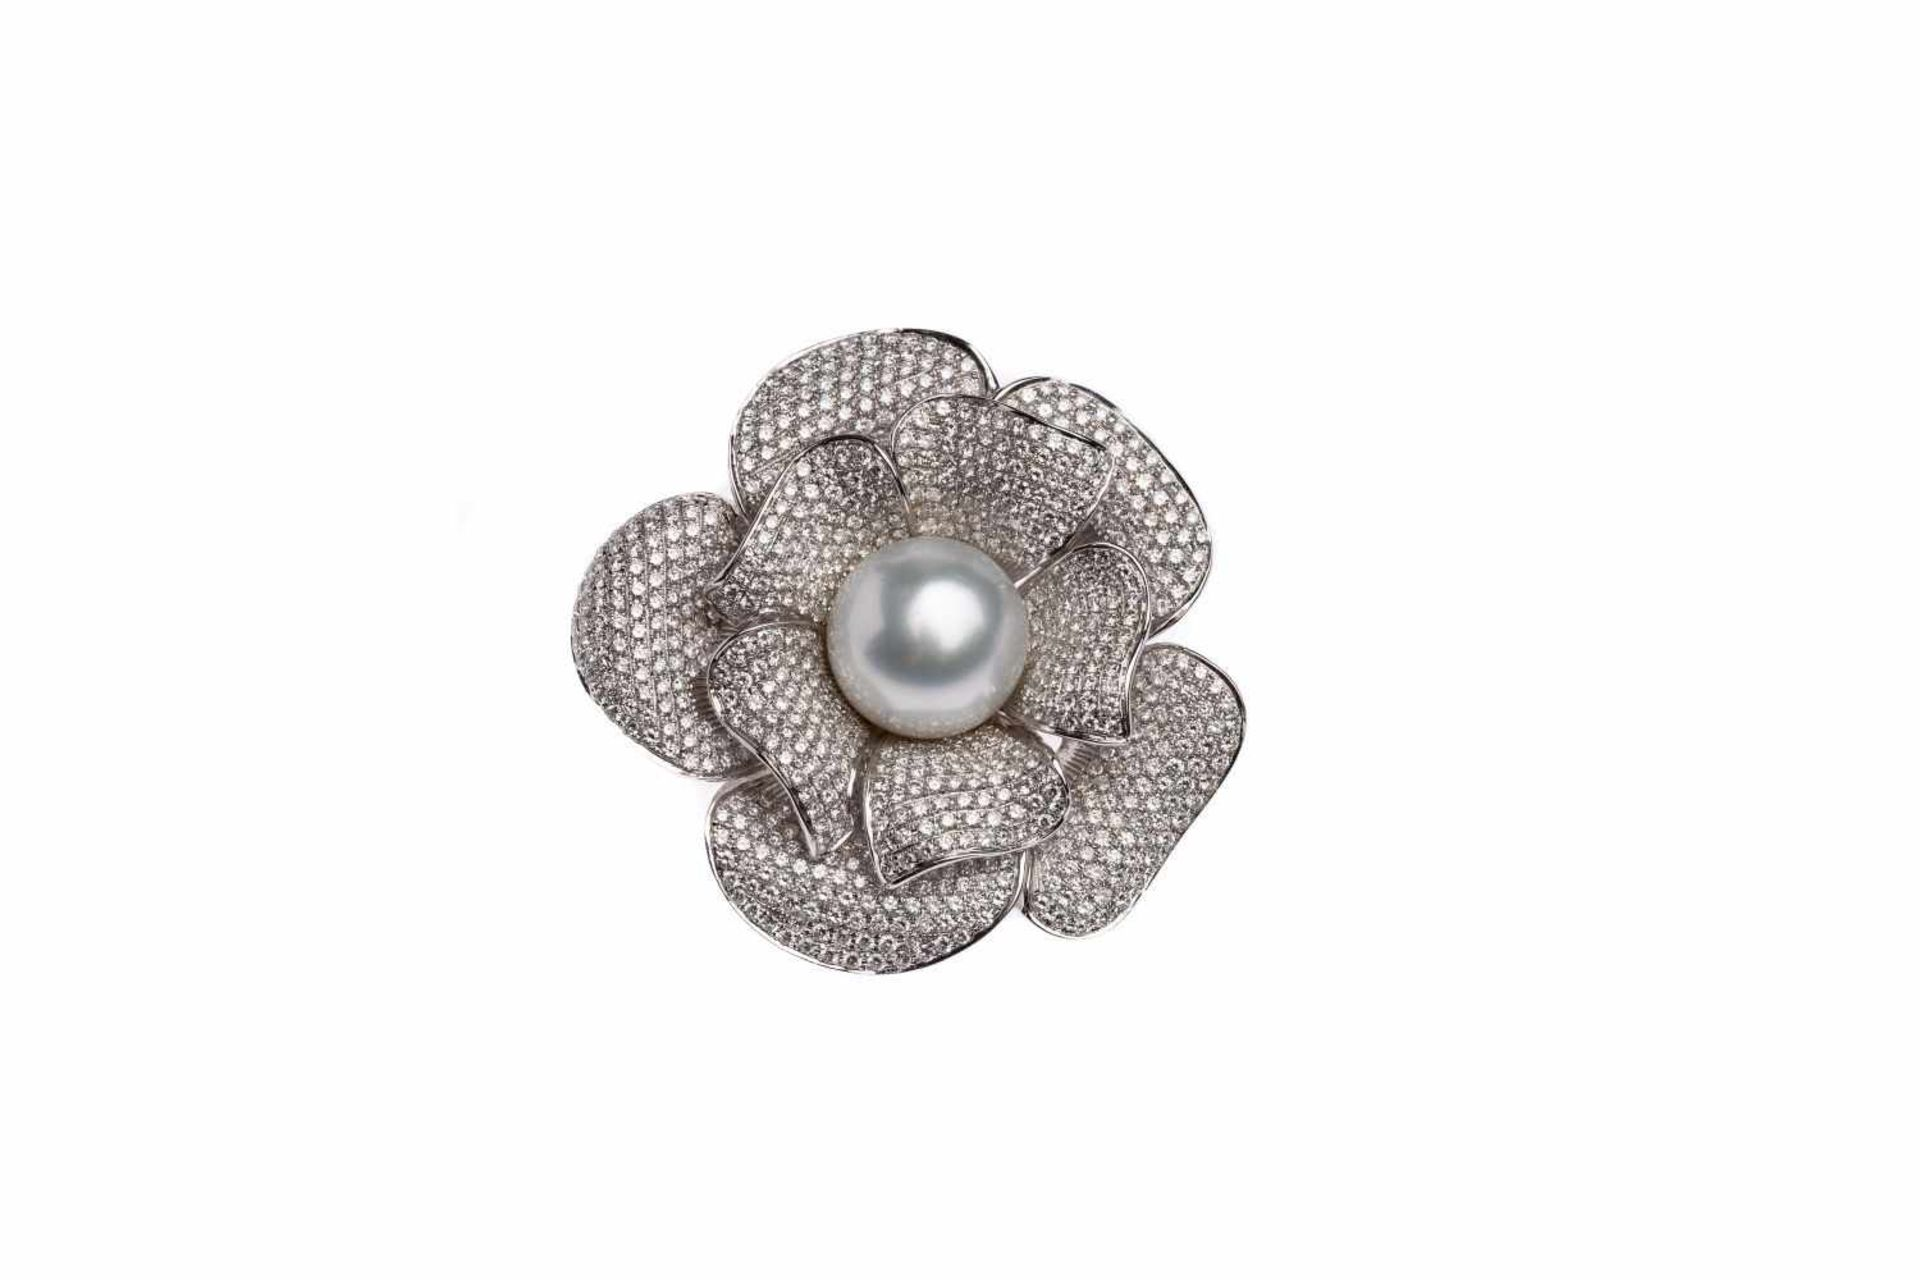 Los 125 - Flowers brooch18k white gold Brooch/pendant with diamonds total carat weight approx. 3.76 ct, and